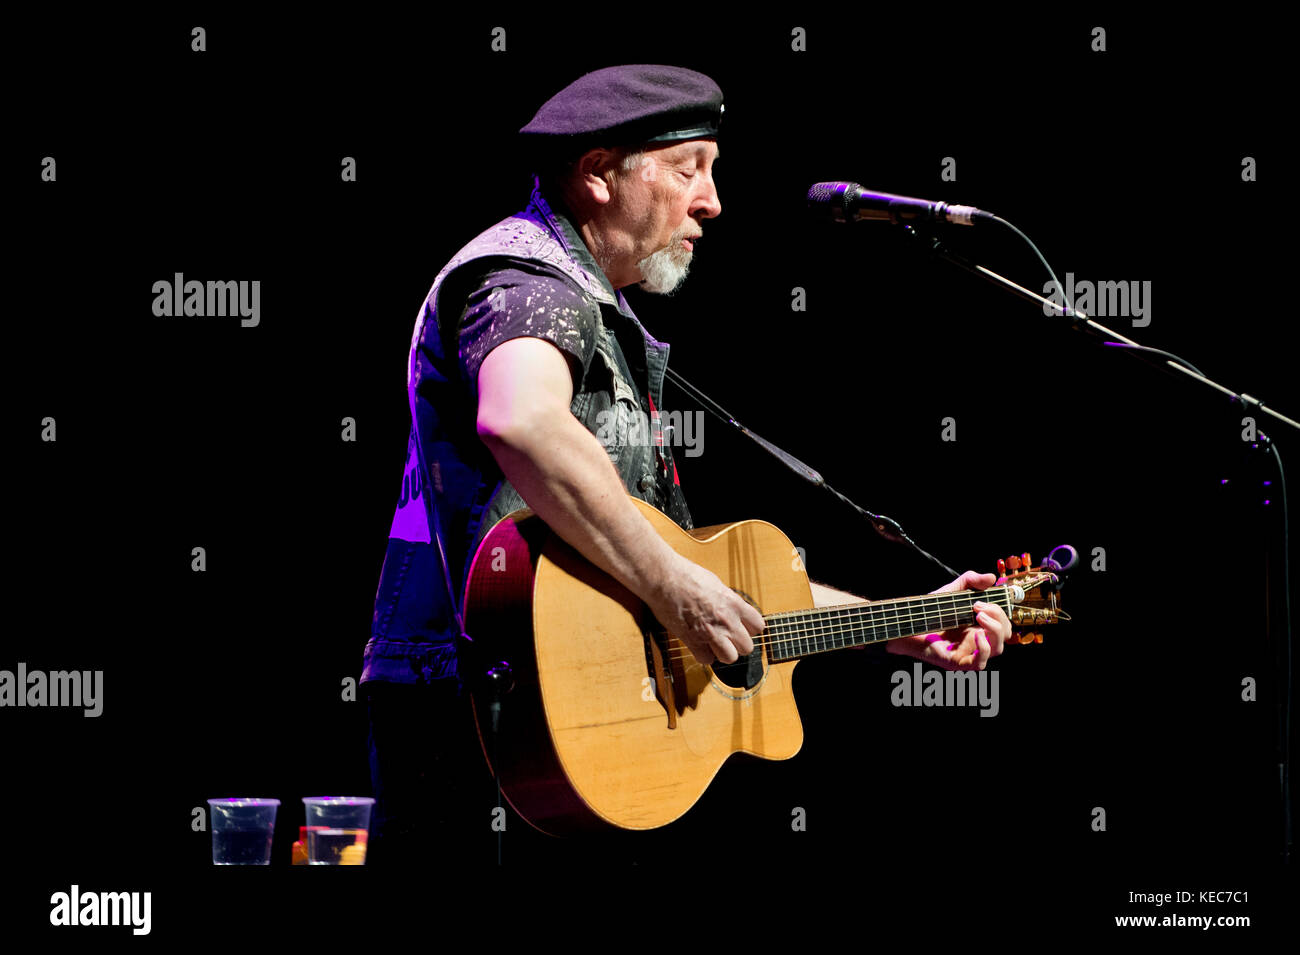 Salford, UK. 19th Oct, 2017. Singer-songwriter Richard Thompson in concert at The Lowry, Salford, UK, 19th October. - Stock Image